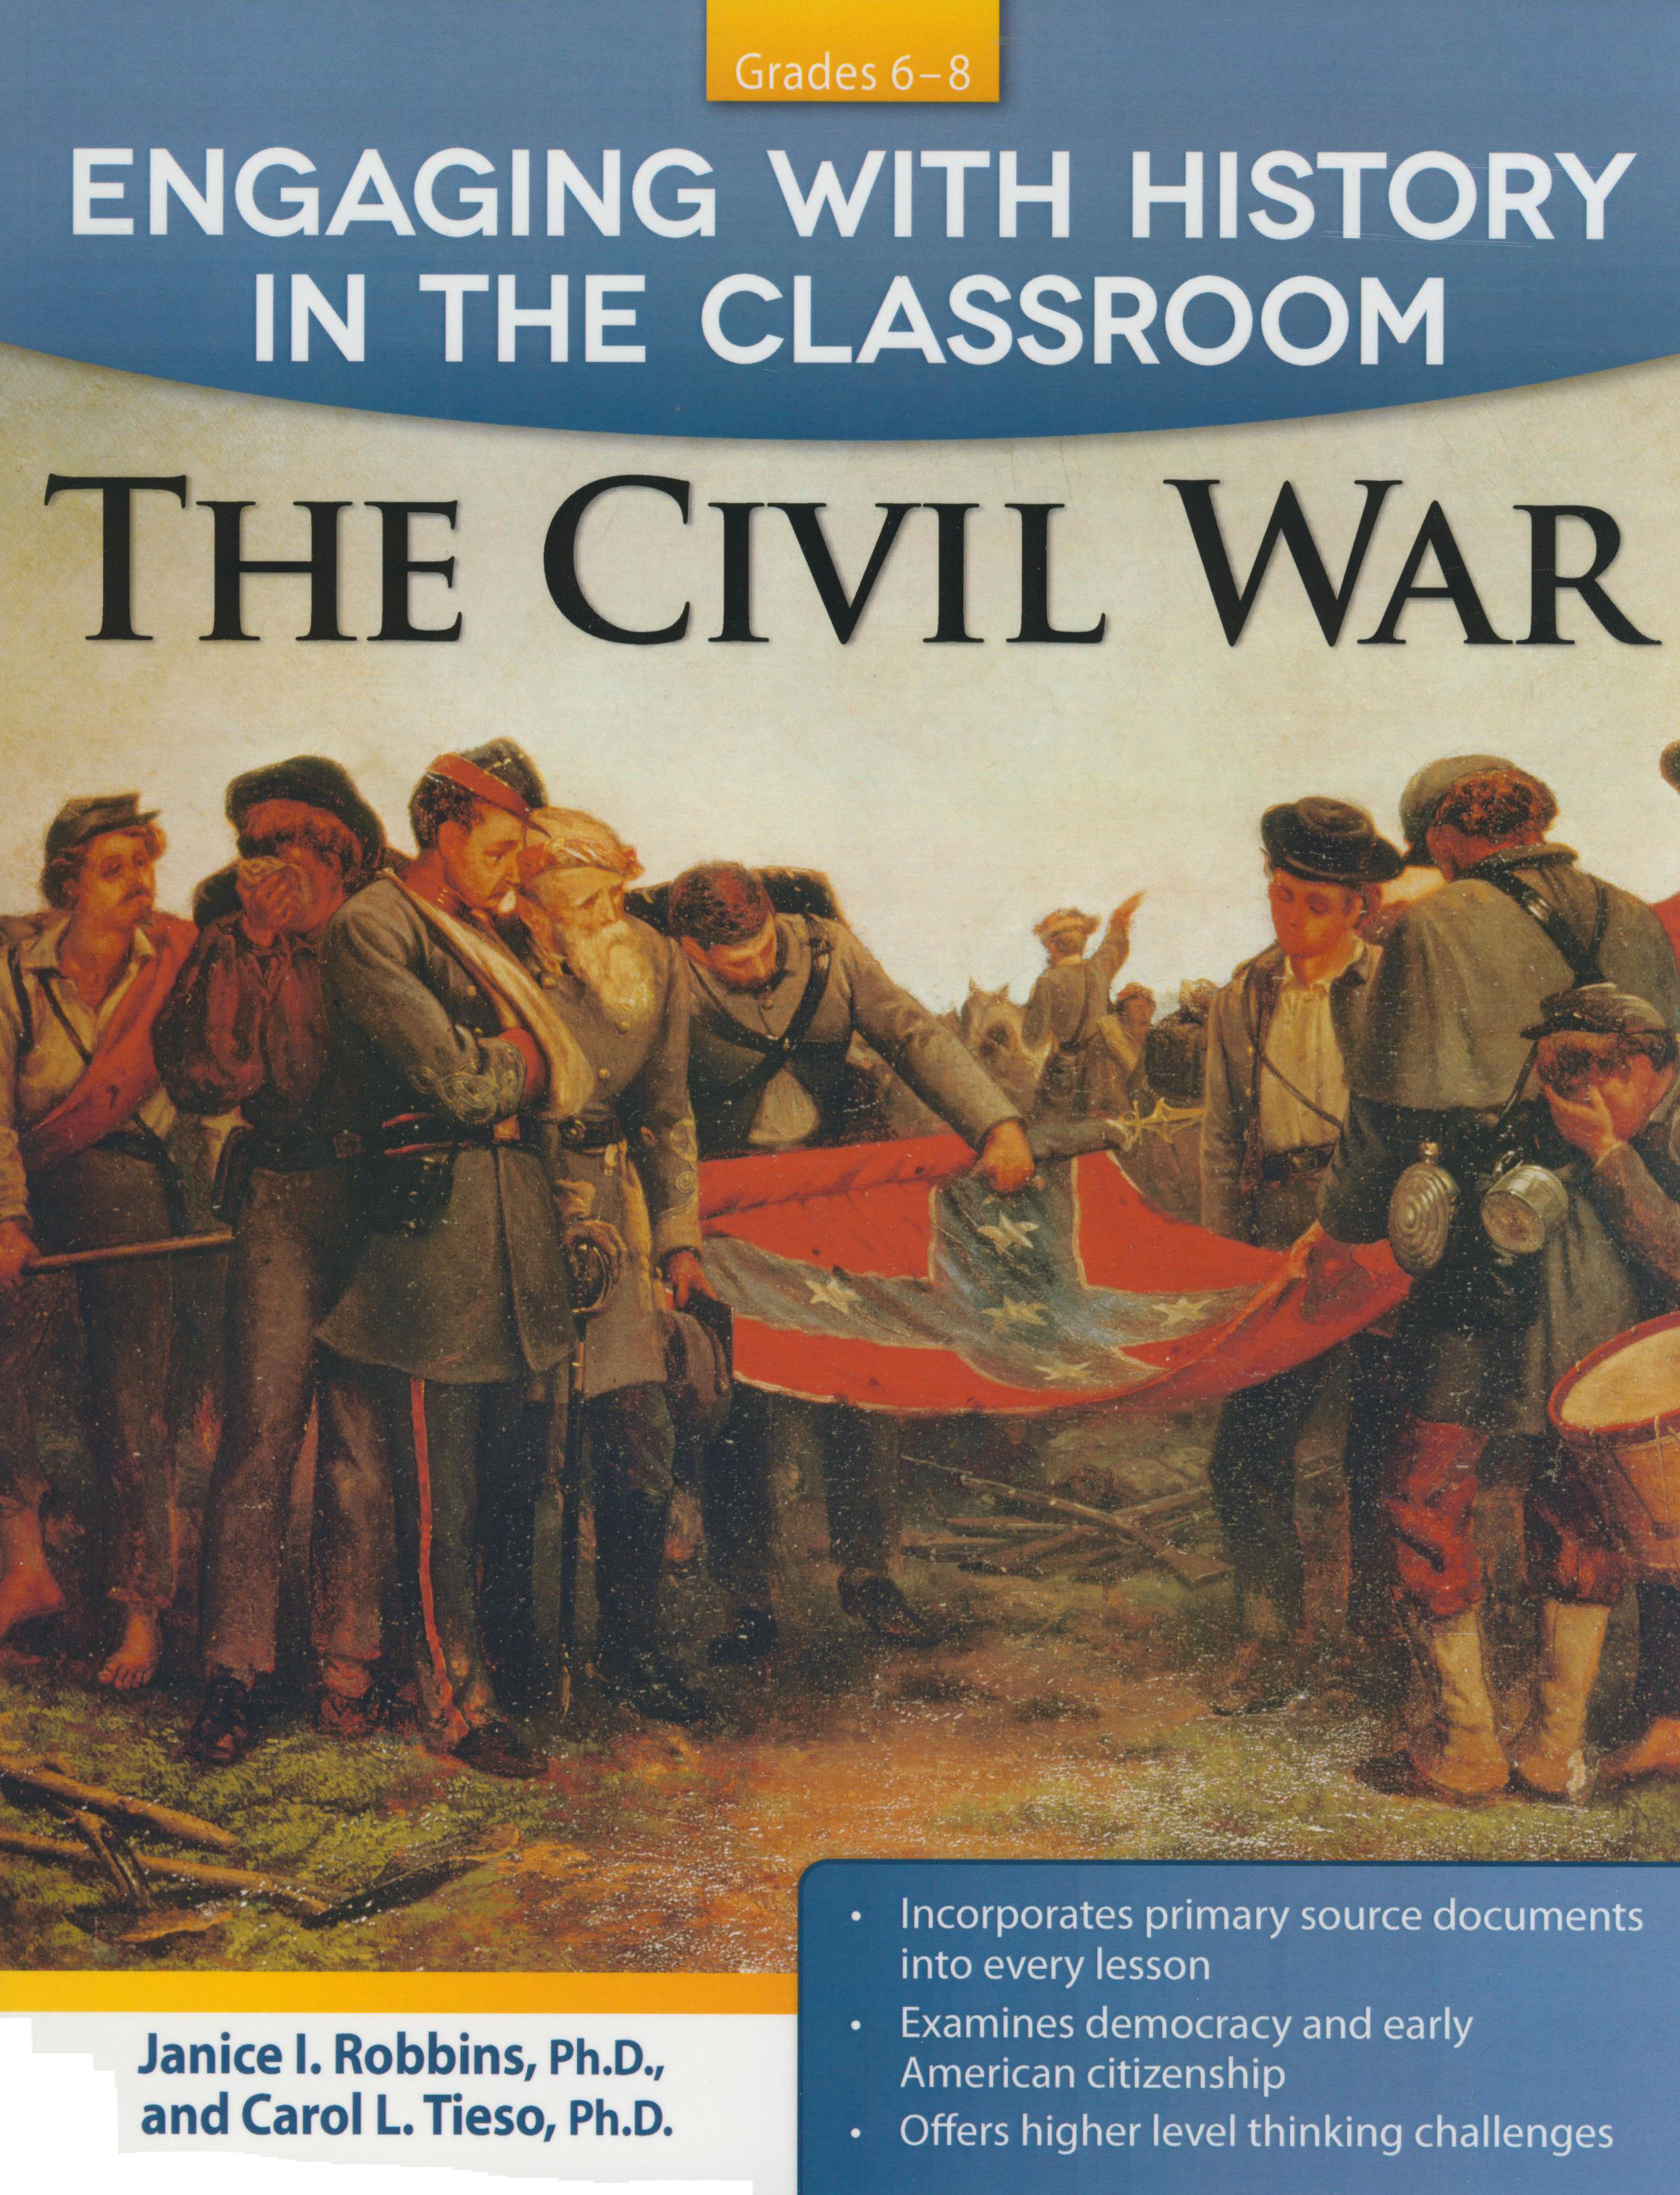 examining the civil war The first liberian civil war was an internal conflict in liberia from 1989 until 1997 the conflict killed about 250,000 people.